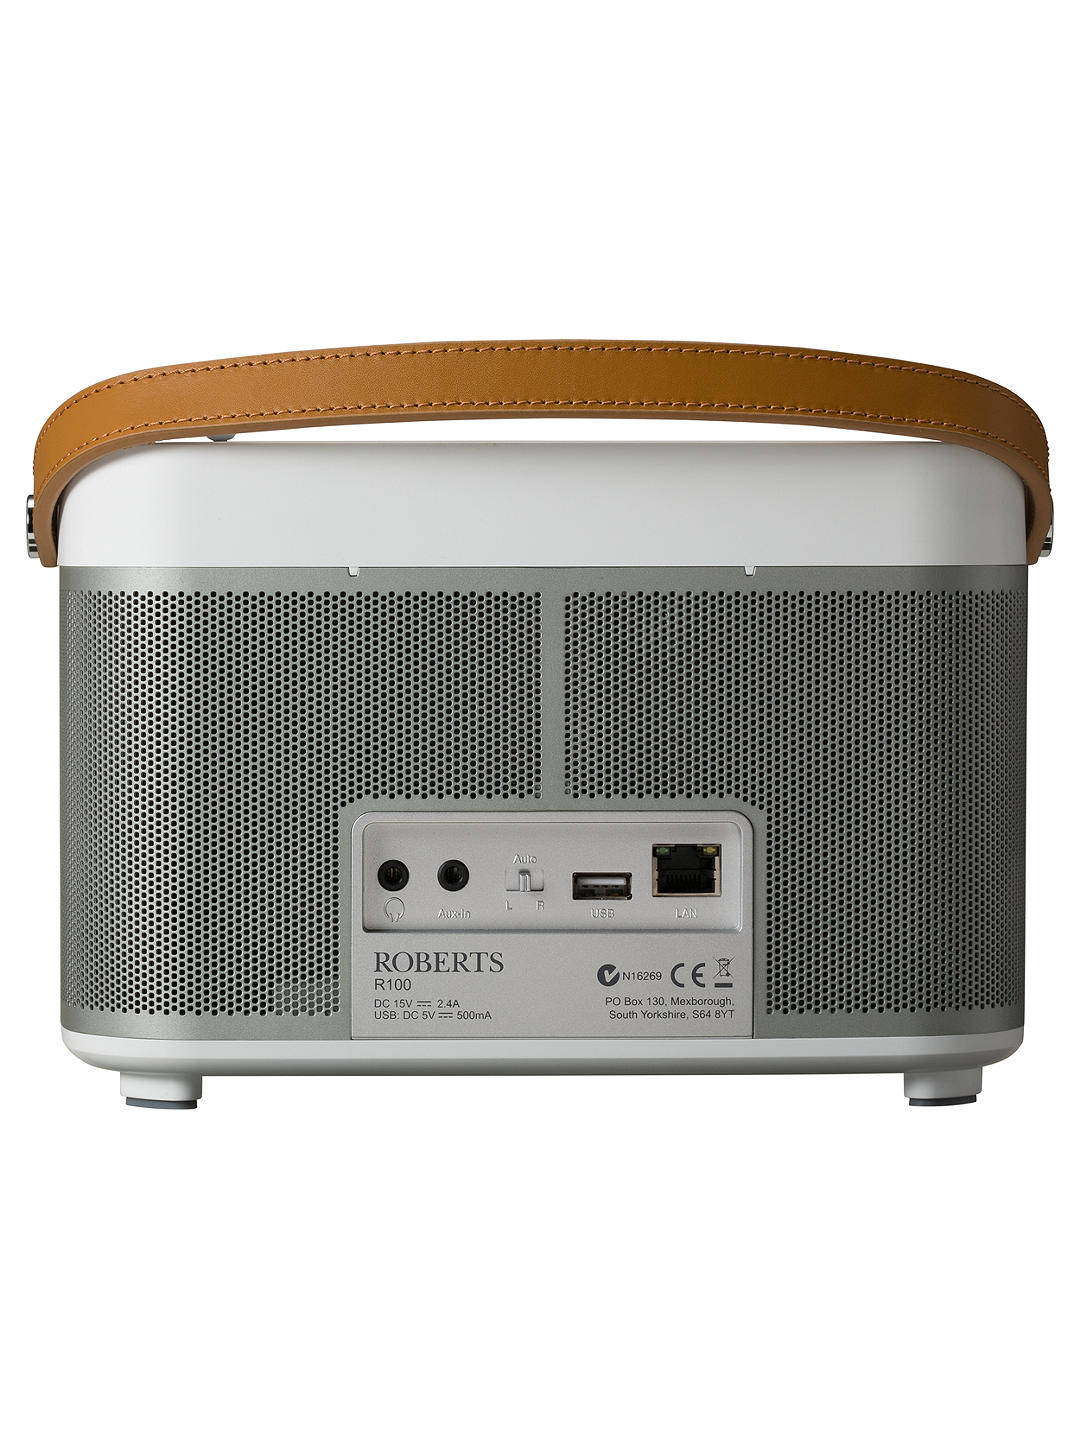 Roberts Radio R100 Wireless Speaker With DAB+/DAB/FM & Internet Radio